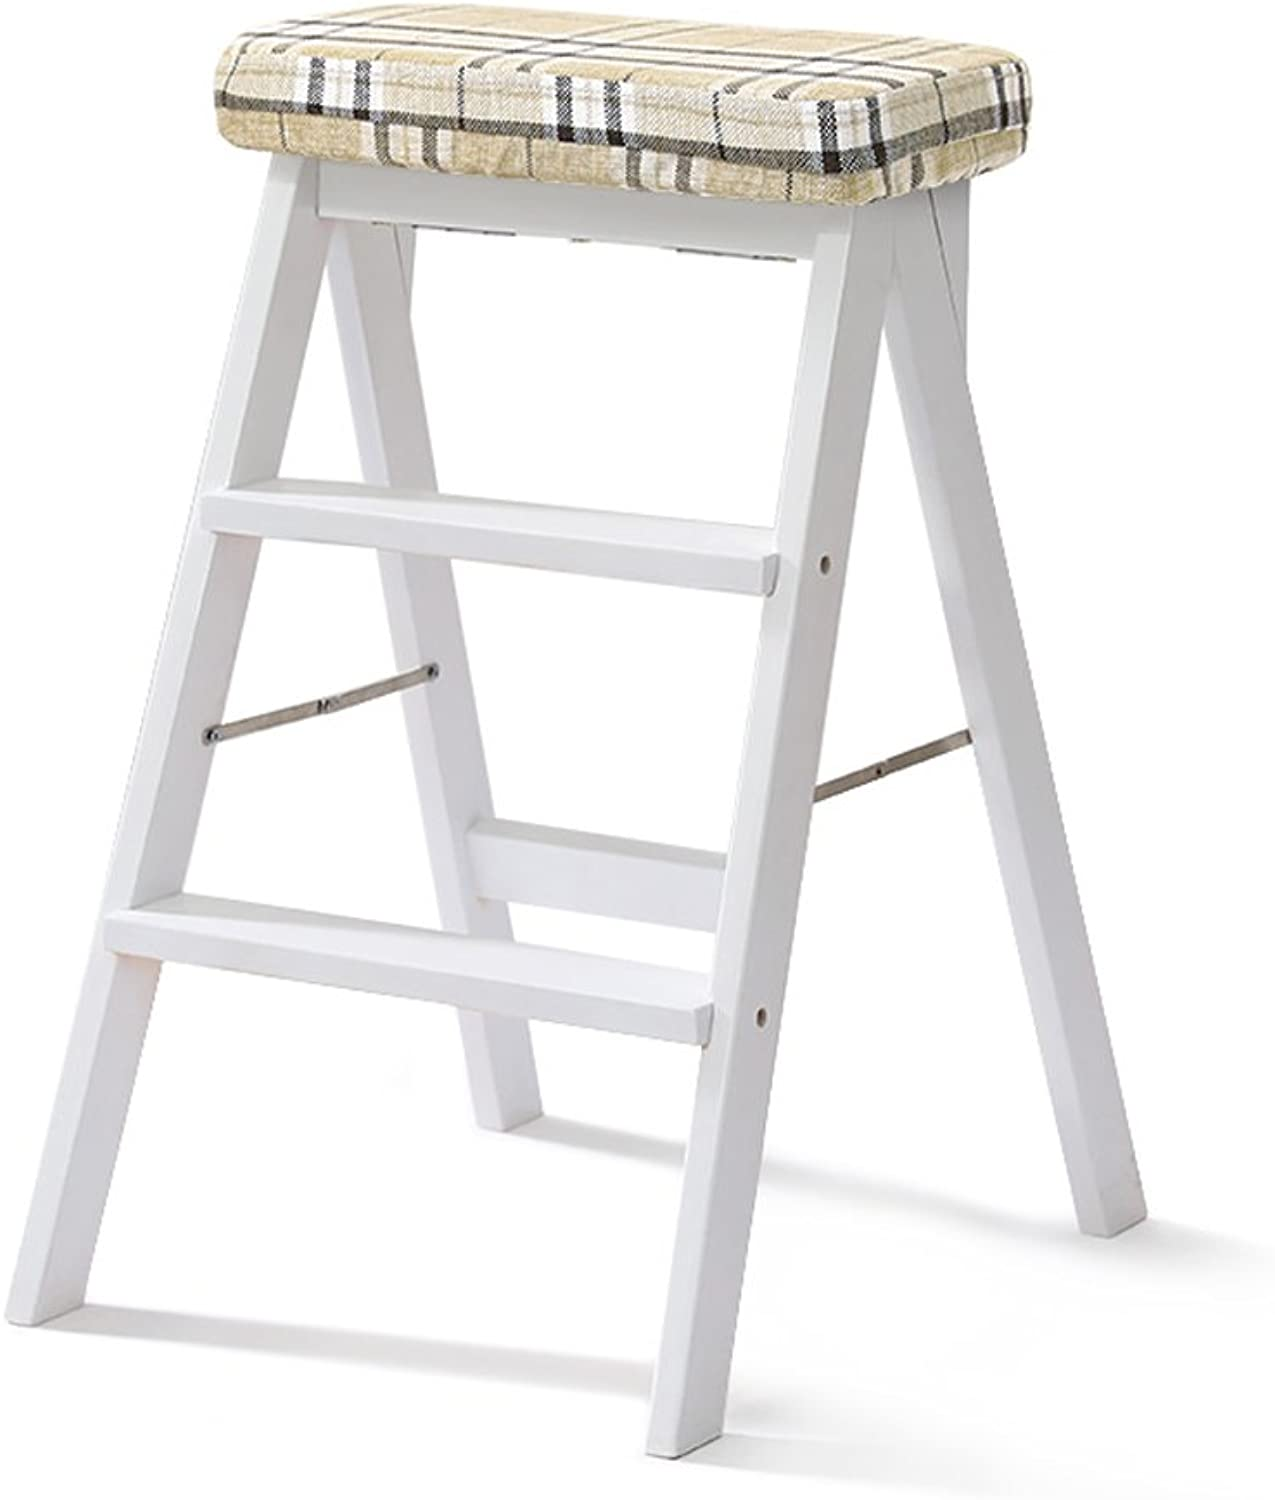 Solid Wood Stool Home Ladder Stool Simple Modern Portable Folding Stool Multifunctional Creative Kitchen high Stool Furniture (color   J, Size   402064cm)